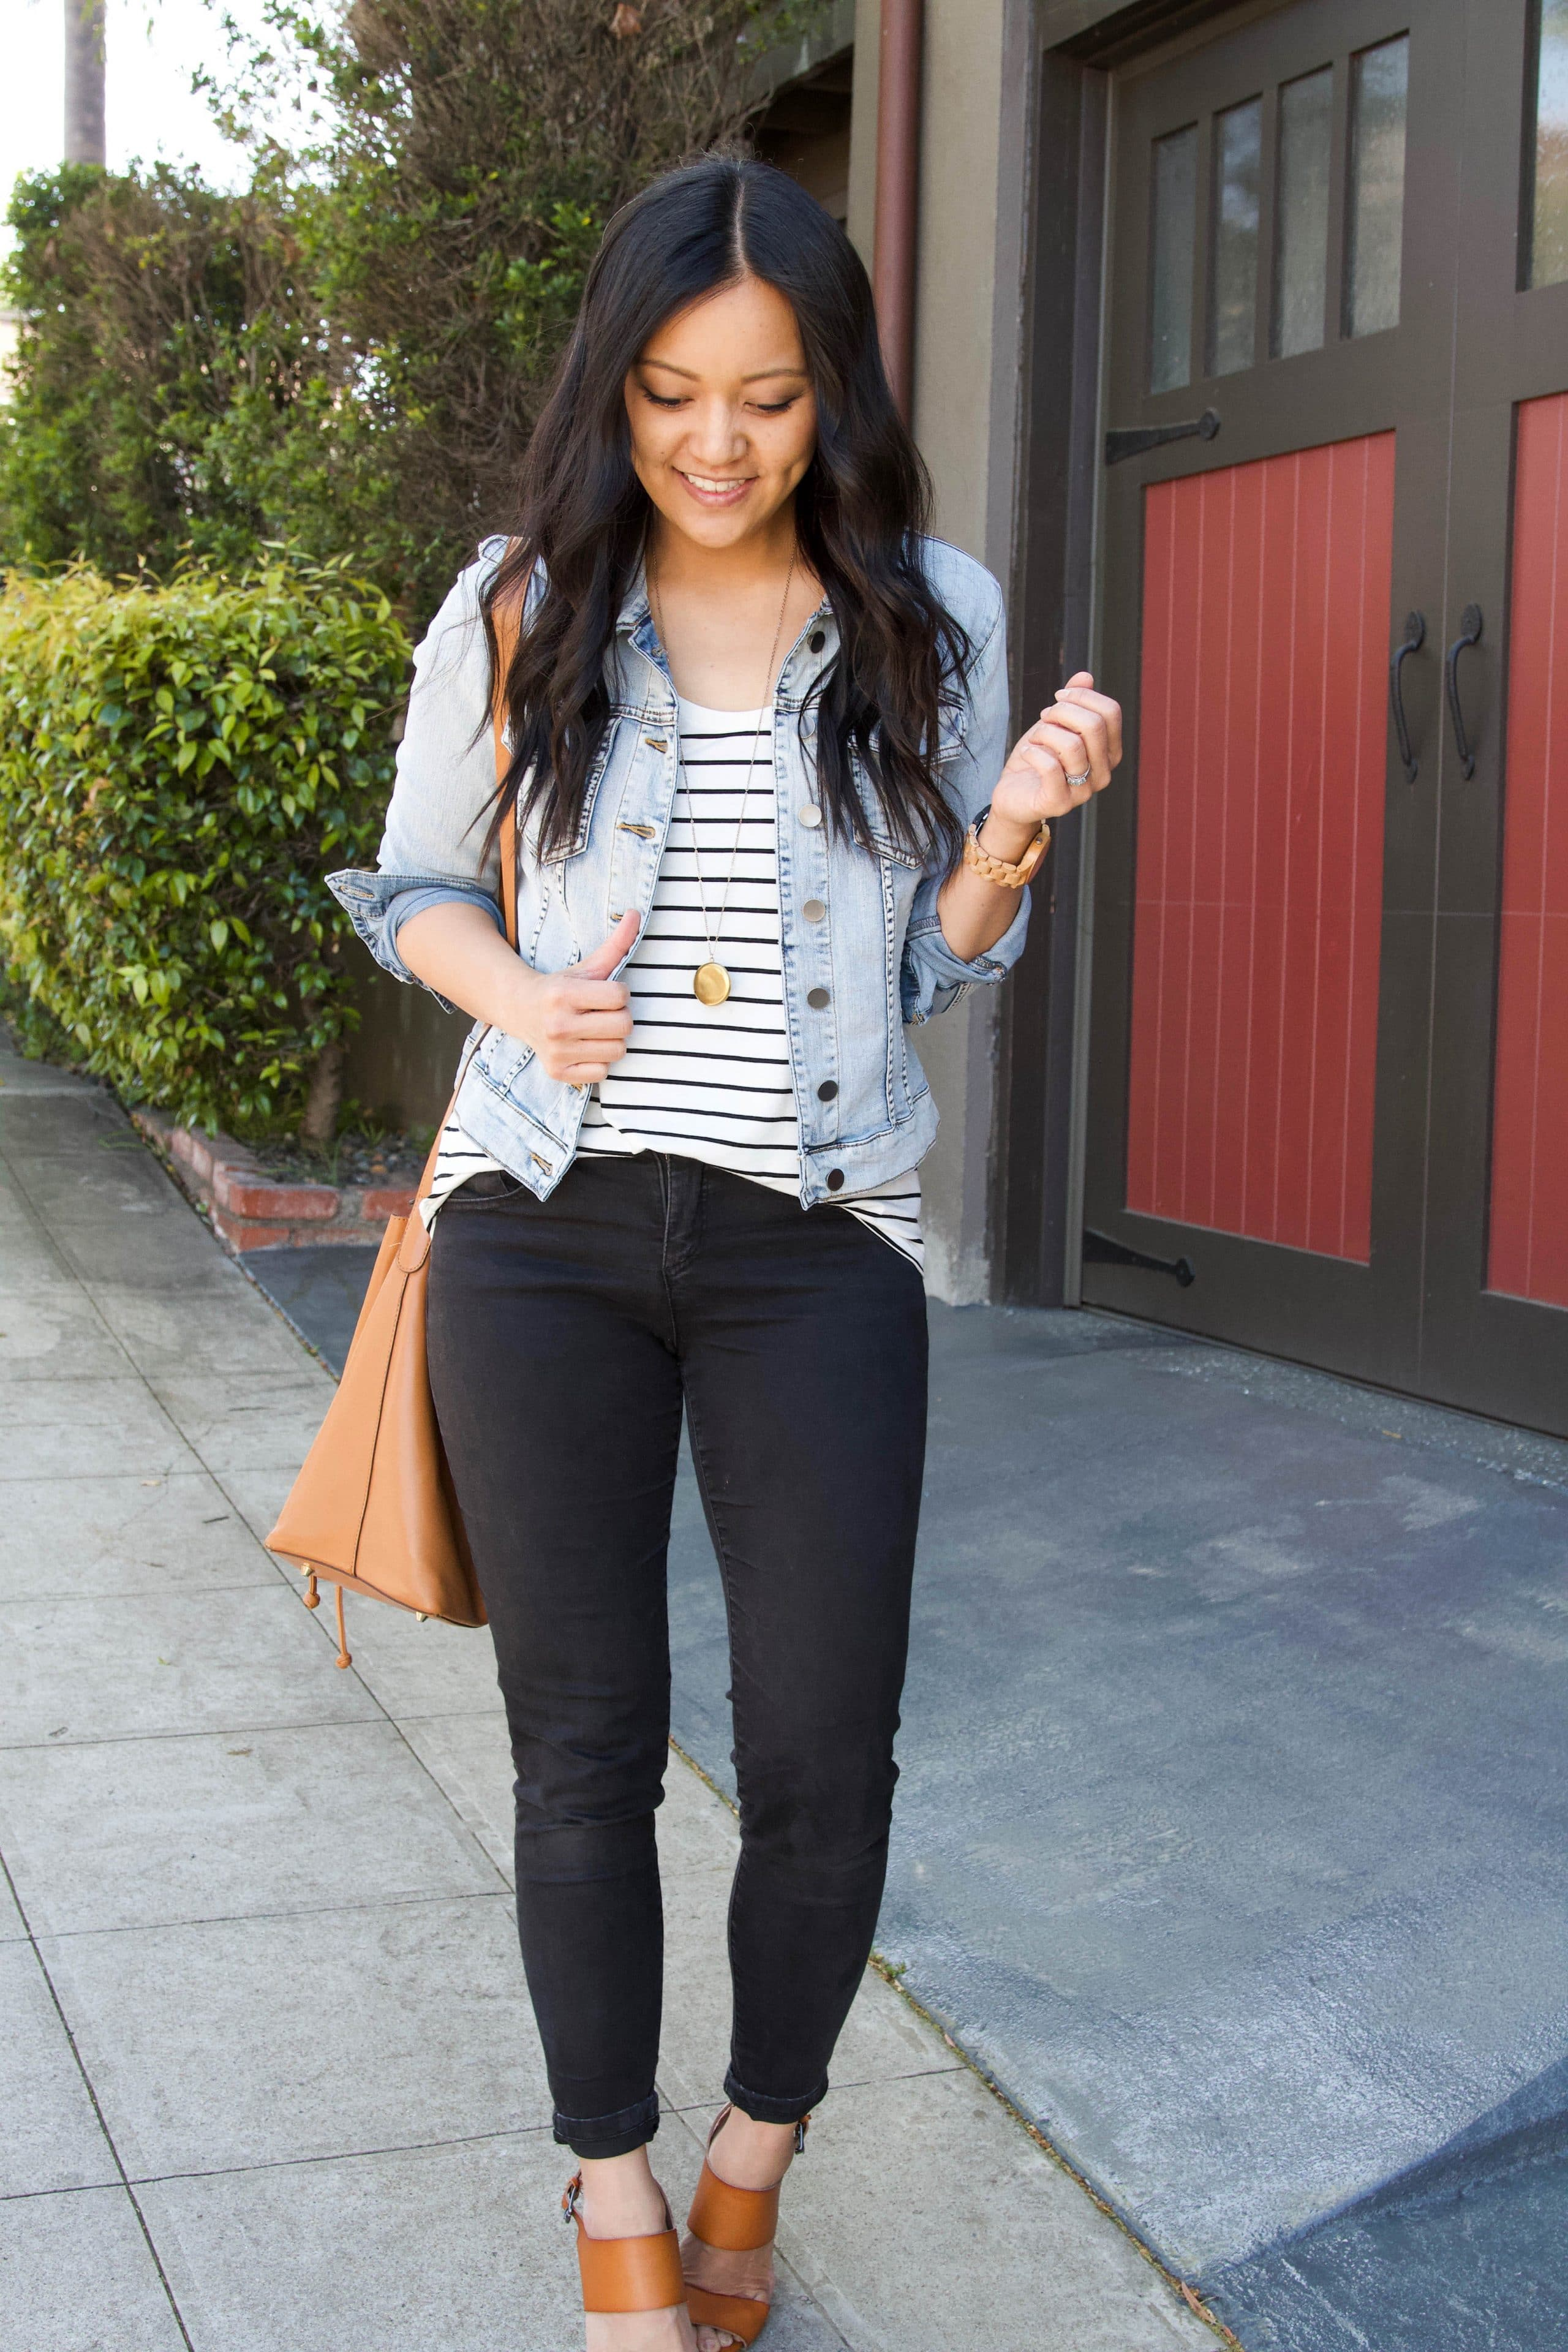 denim jacket + black jeans + striped tee